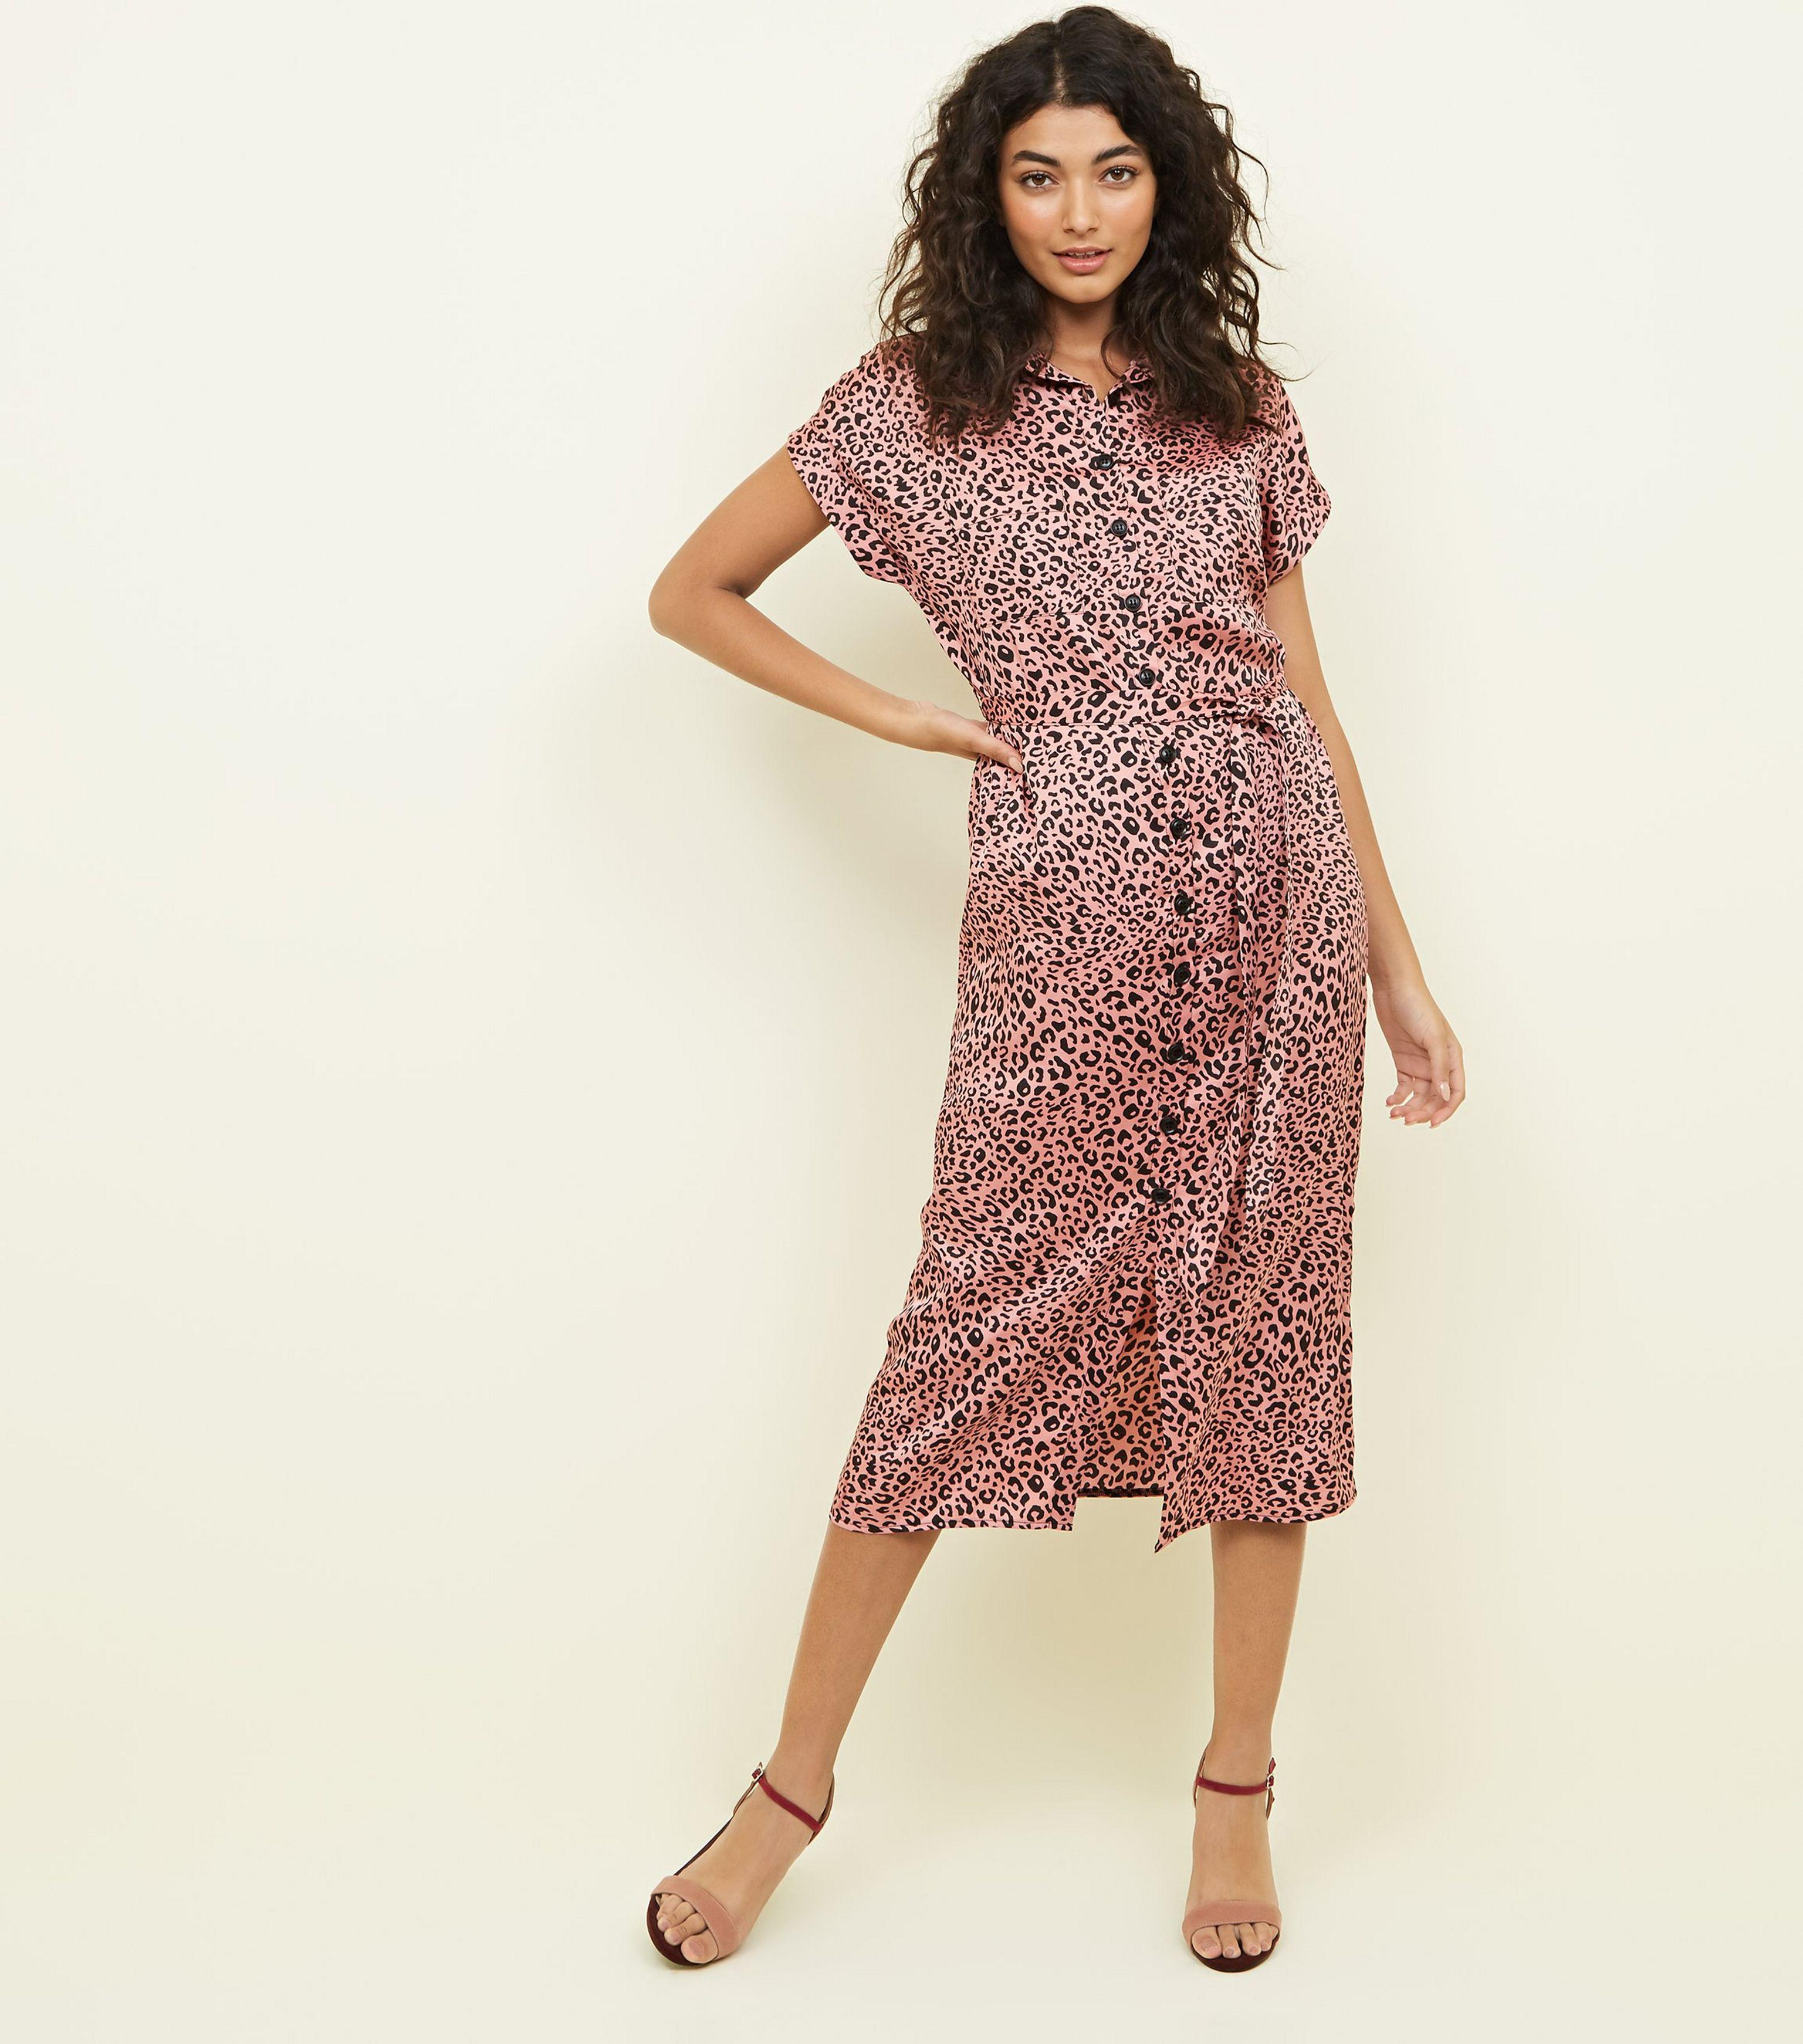 a44e462d57 New Look Pink Leopard Print Satin Midi Shirt Dress in Pink - Lyst